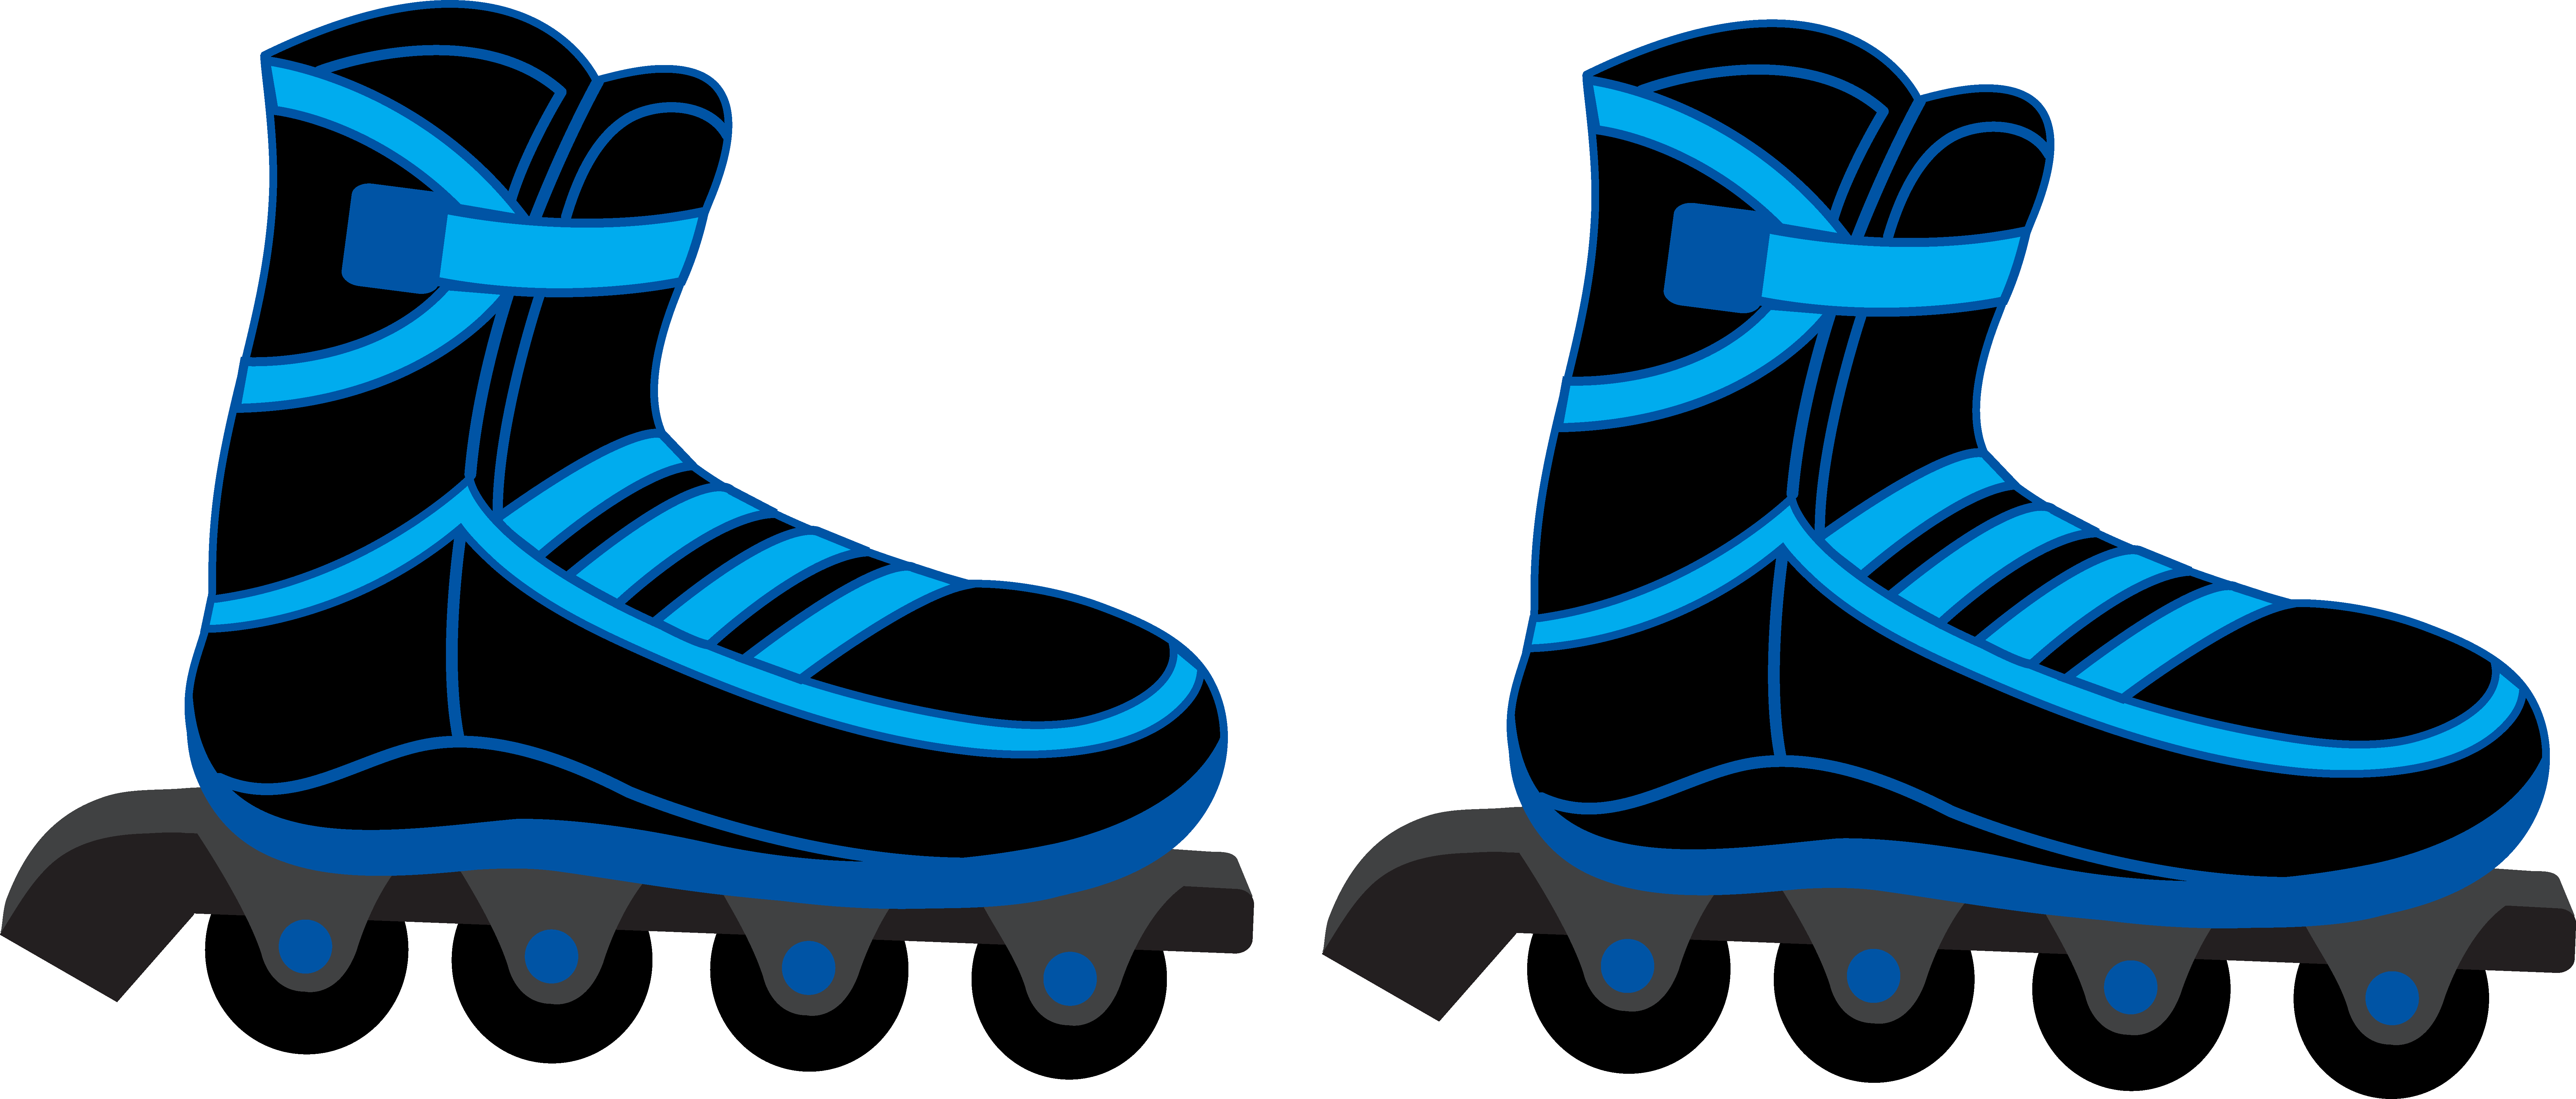 Cool Blue and Black Rollerblades.